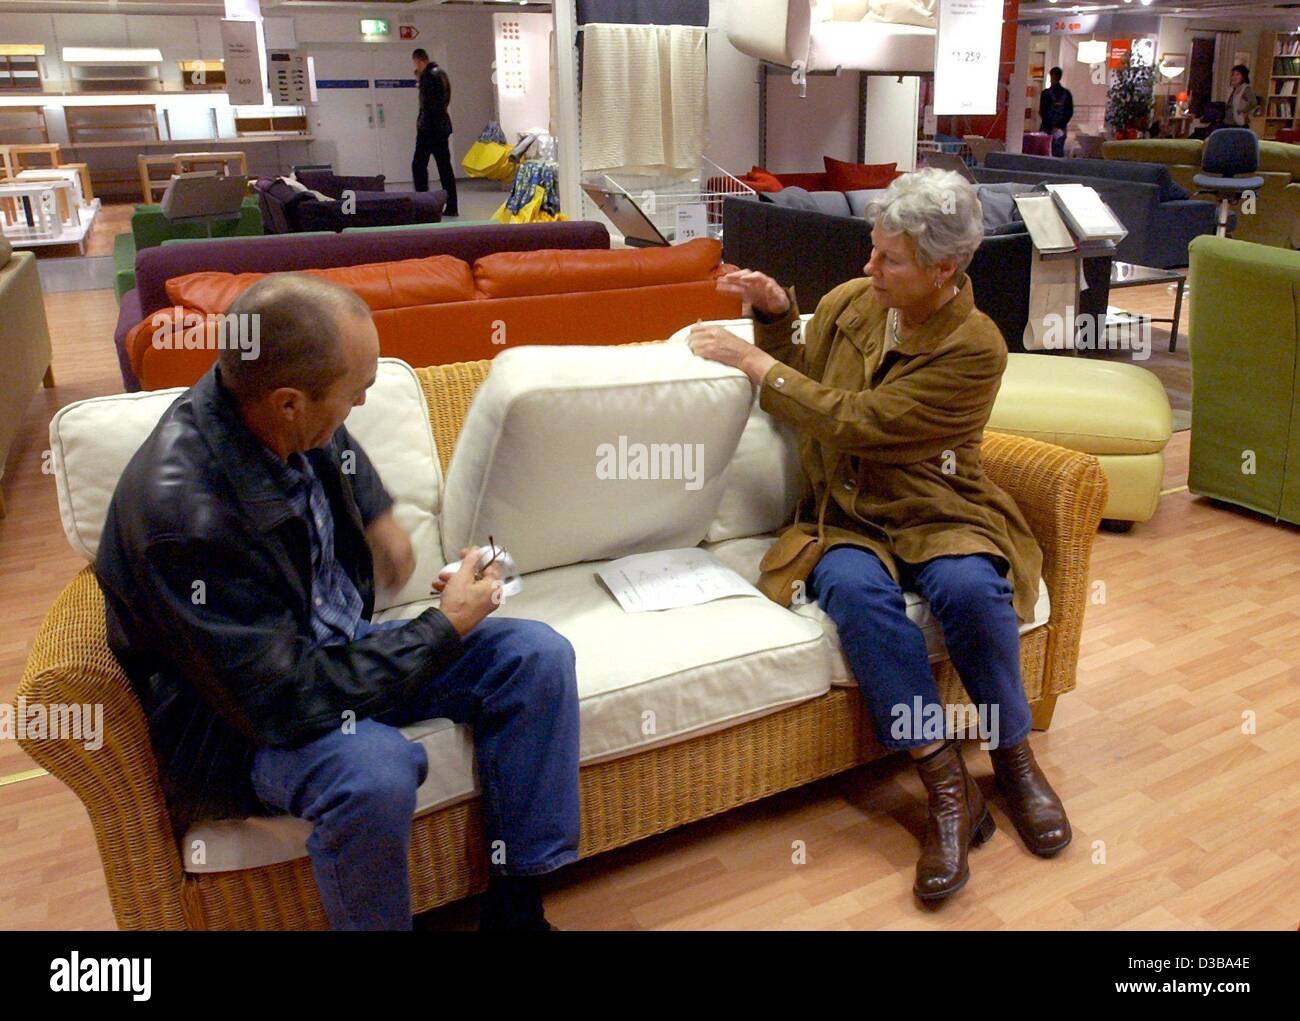 Ikea Köln Sofa Ikea Customers Stock Photos Ikea Customers Stock Images Alamy